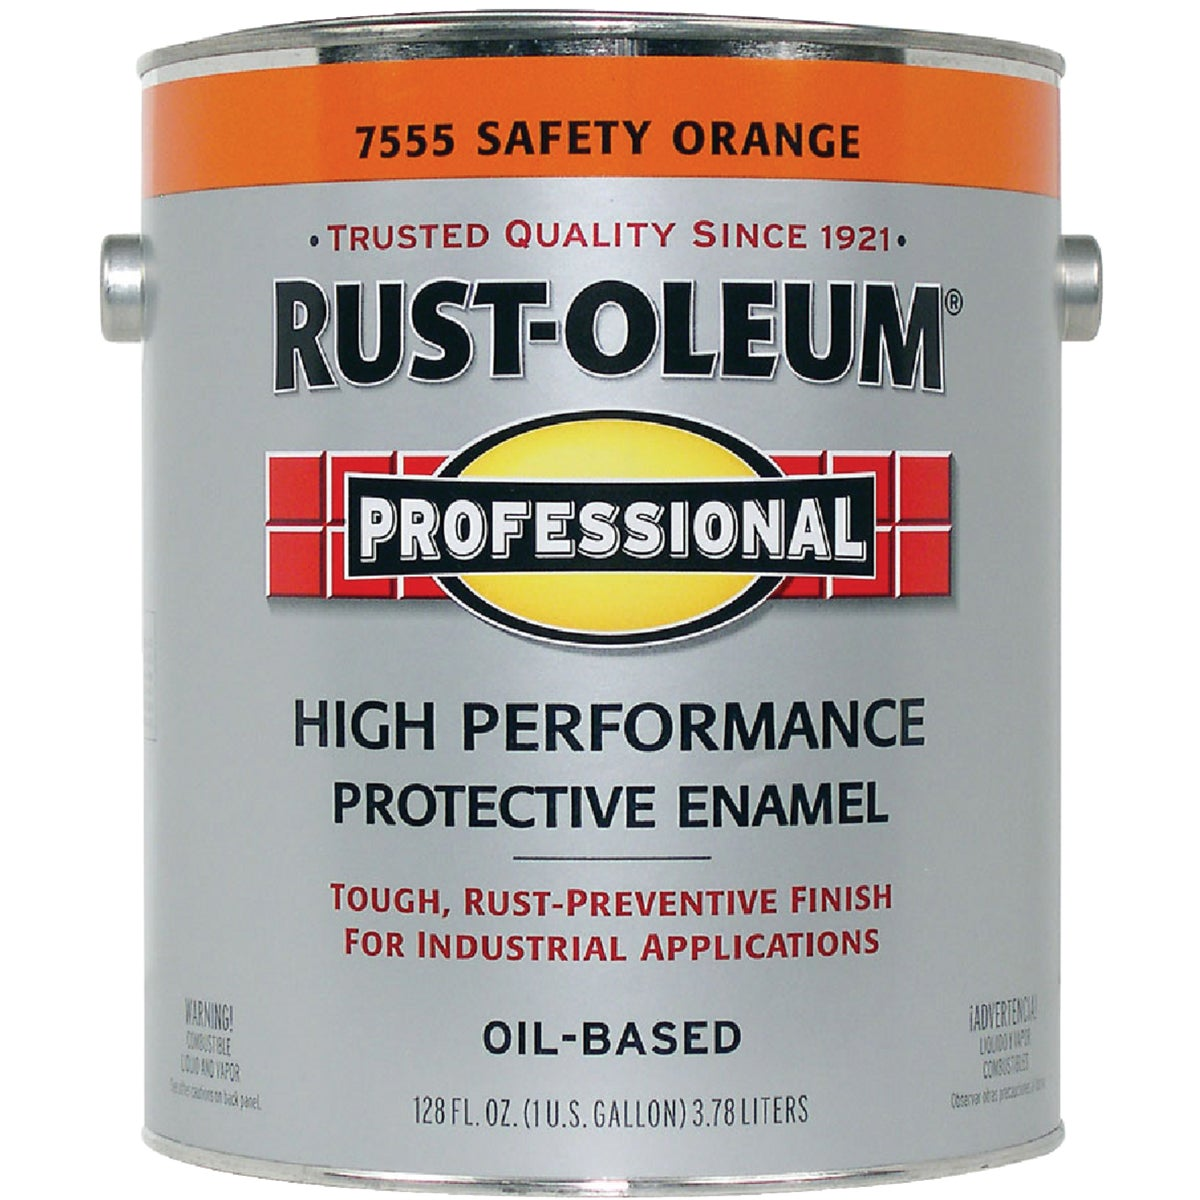 VOC SAFETY ORANGE ENAMEL - 245477 by Rustoleum